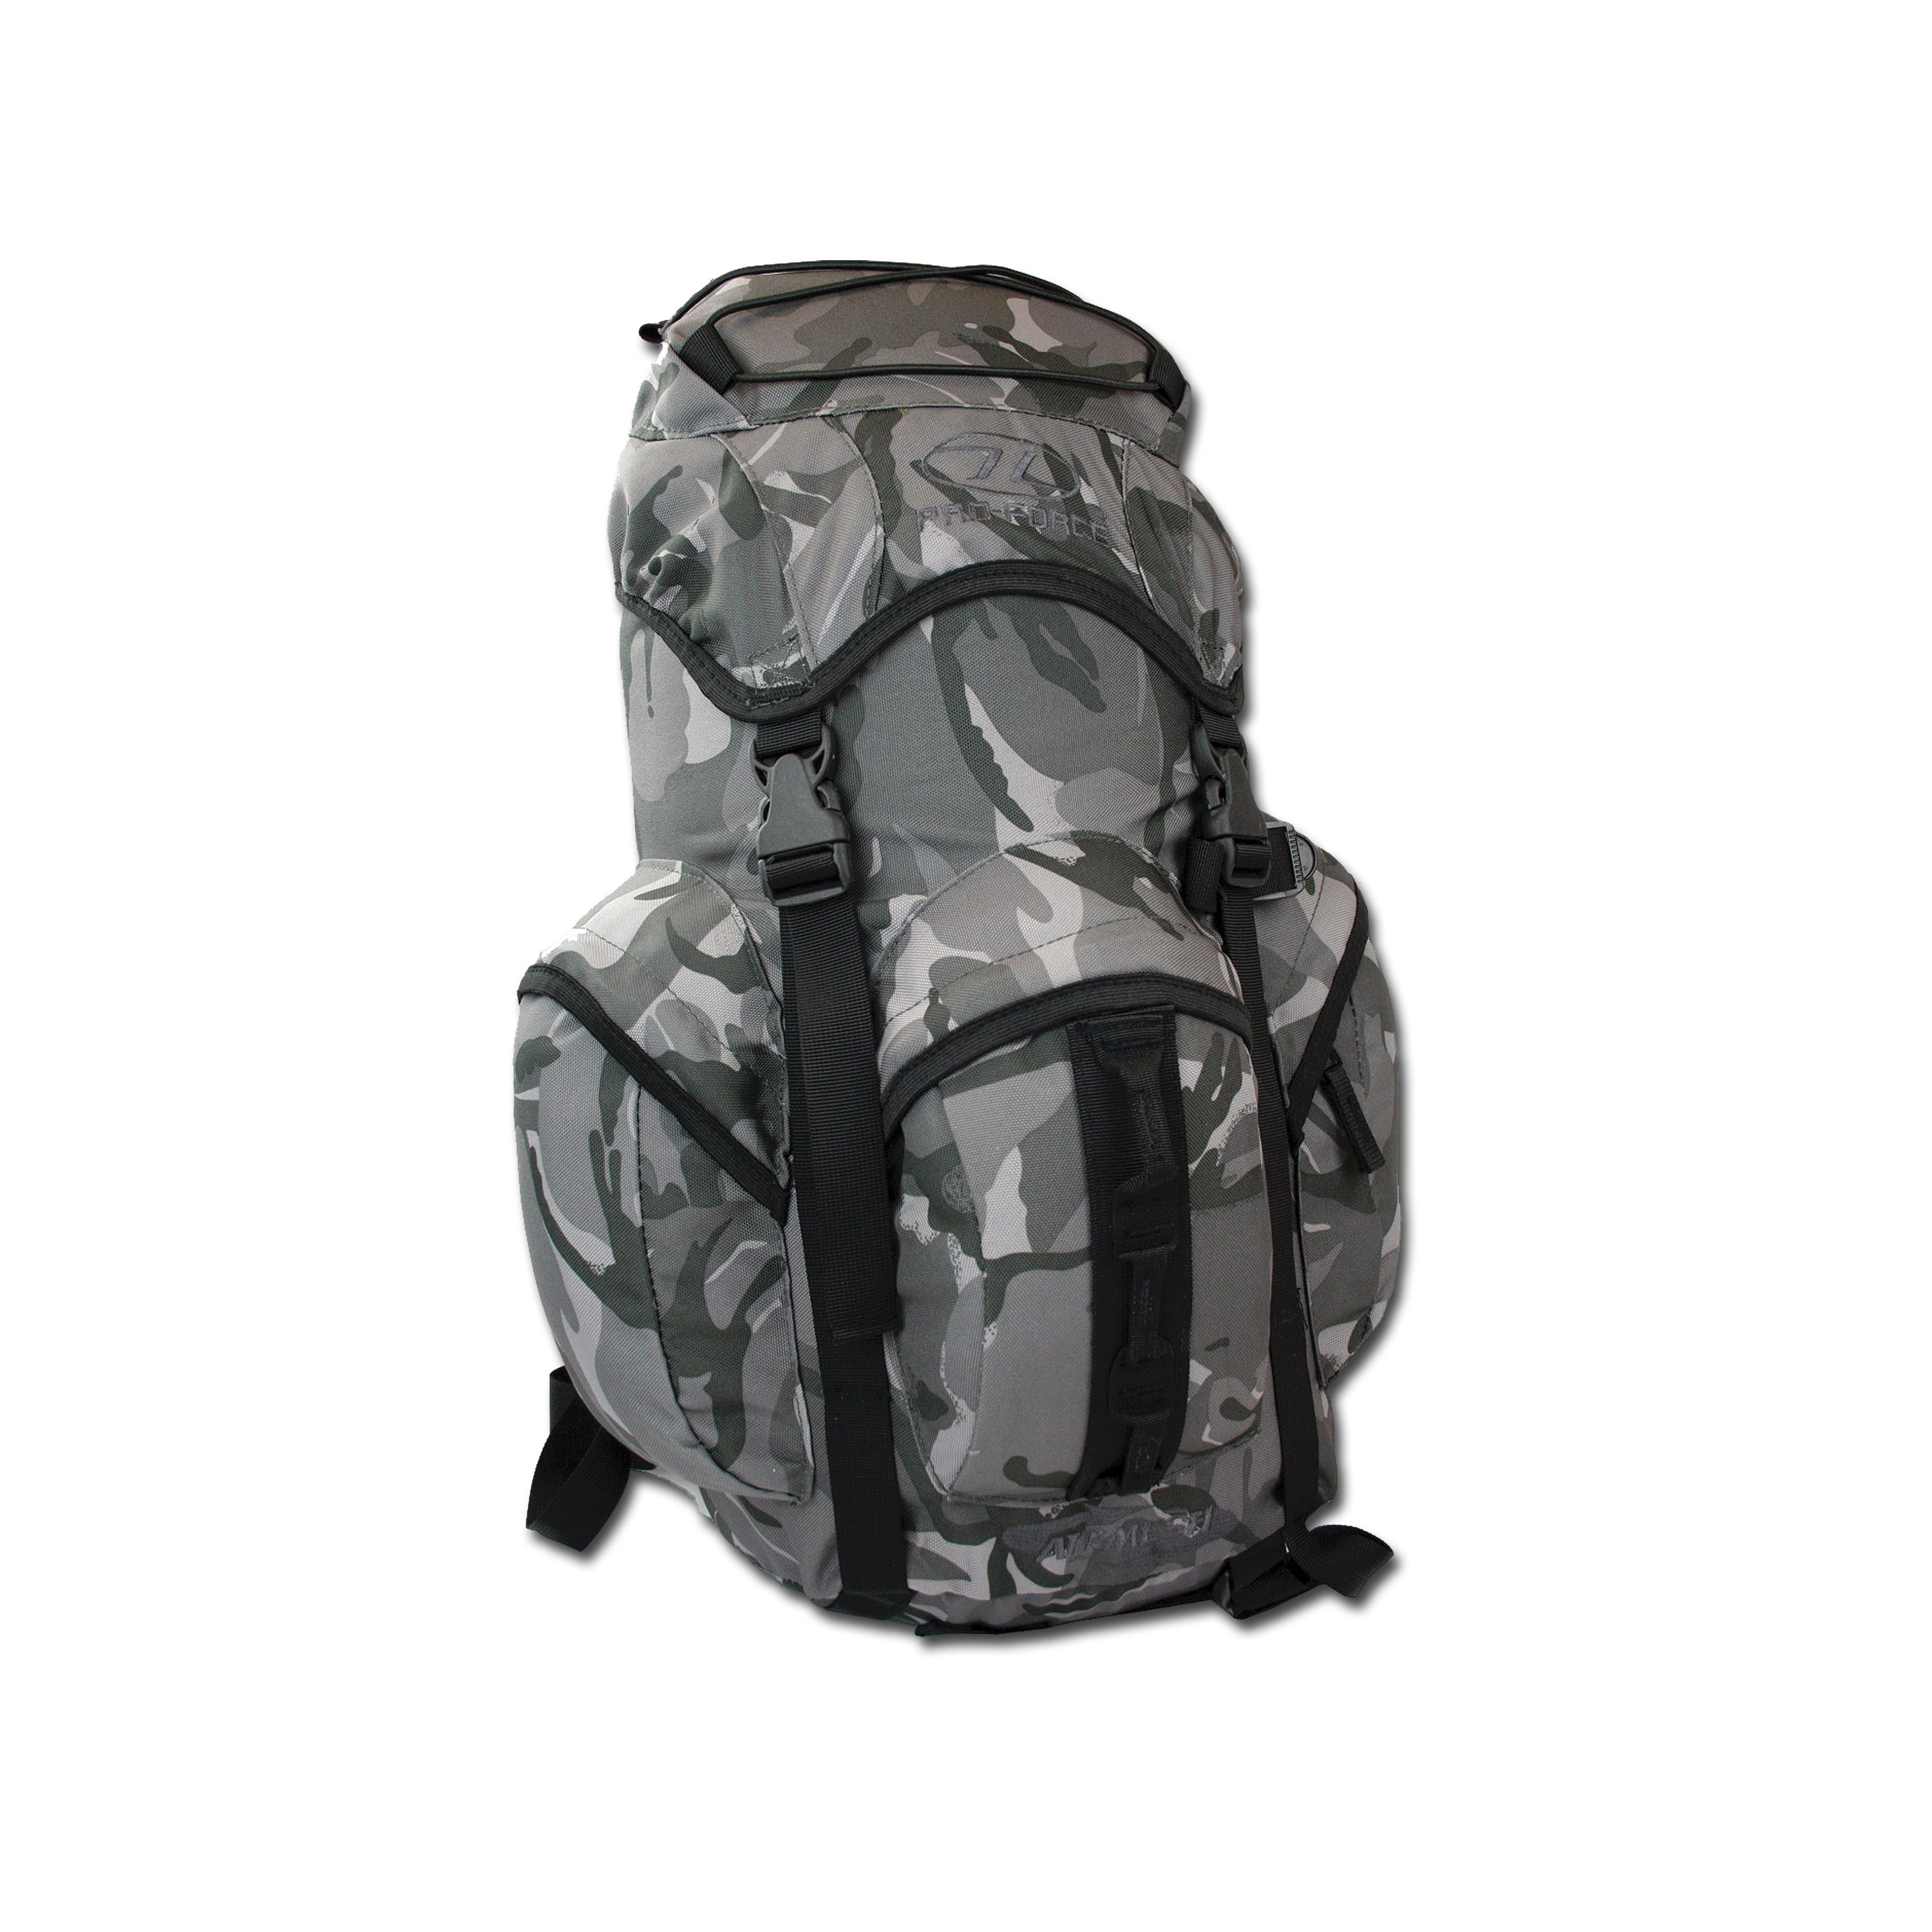 Rucksack Pro Force New Forces 25 L night urban